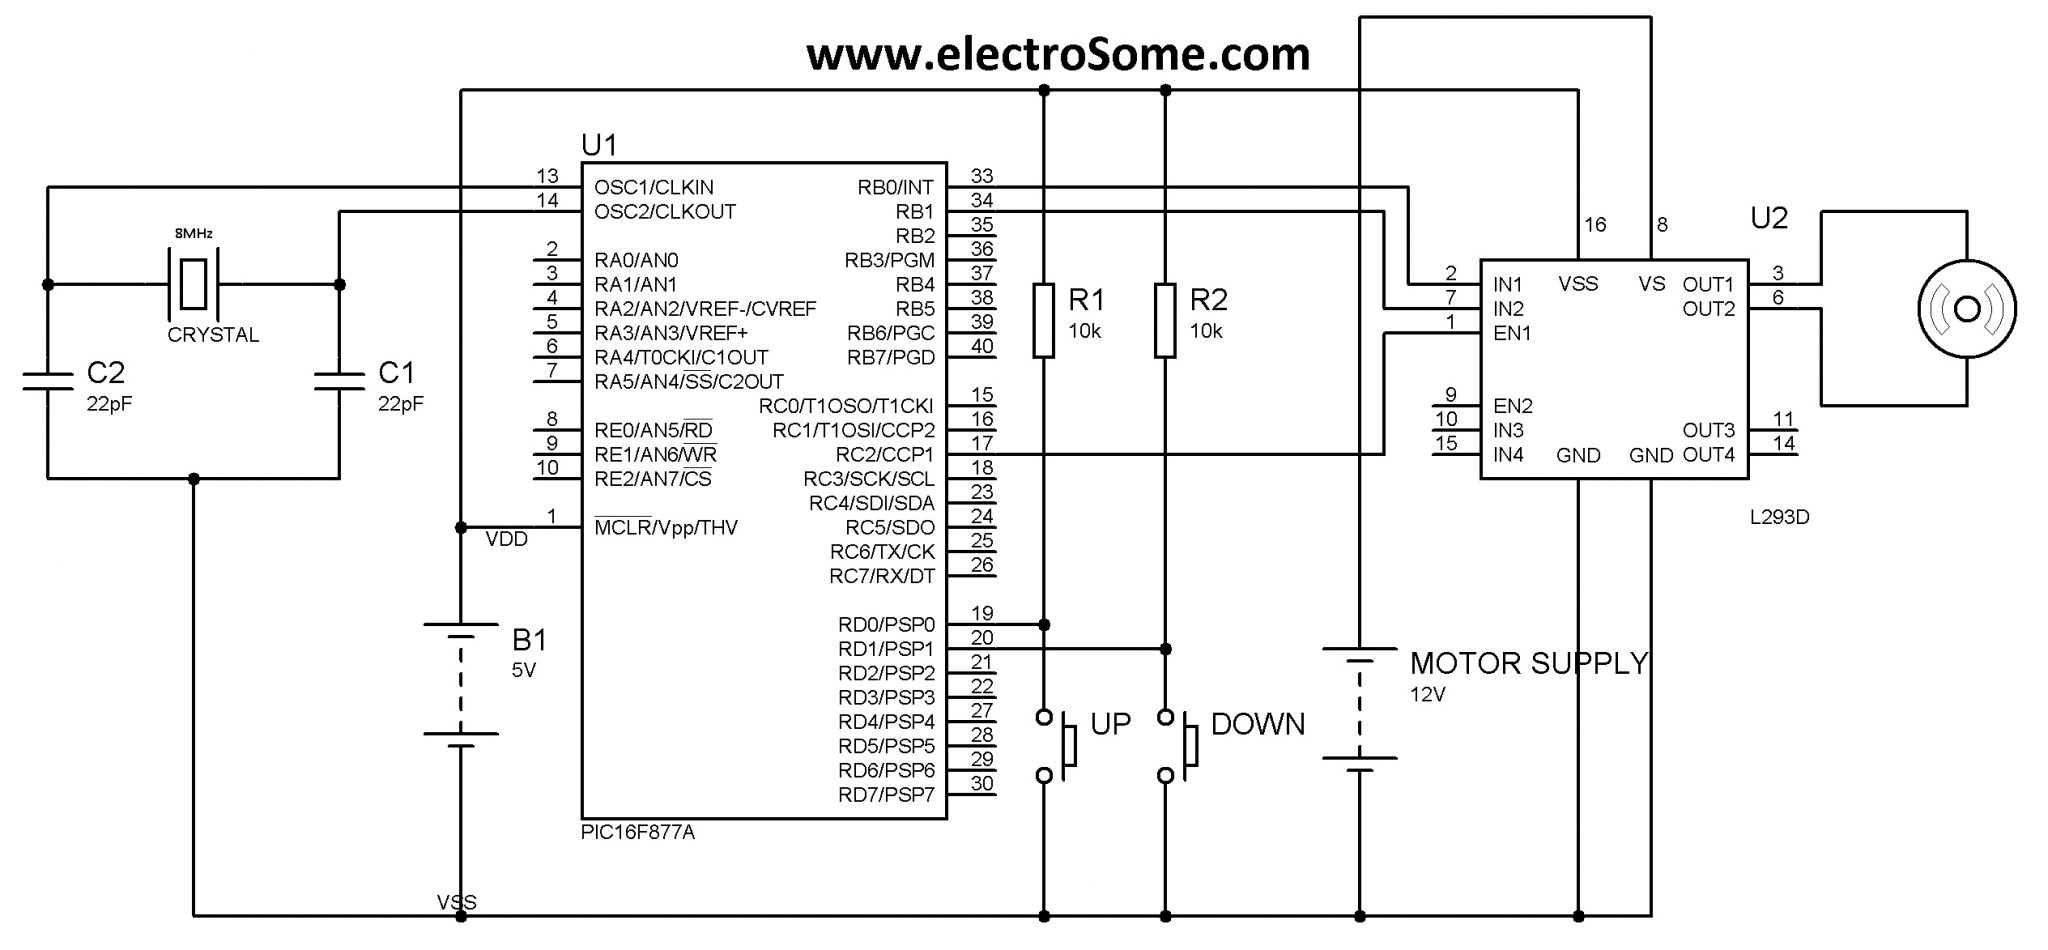 Dc motor speed control by pwm for Motor speed control pwm